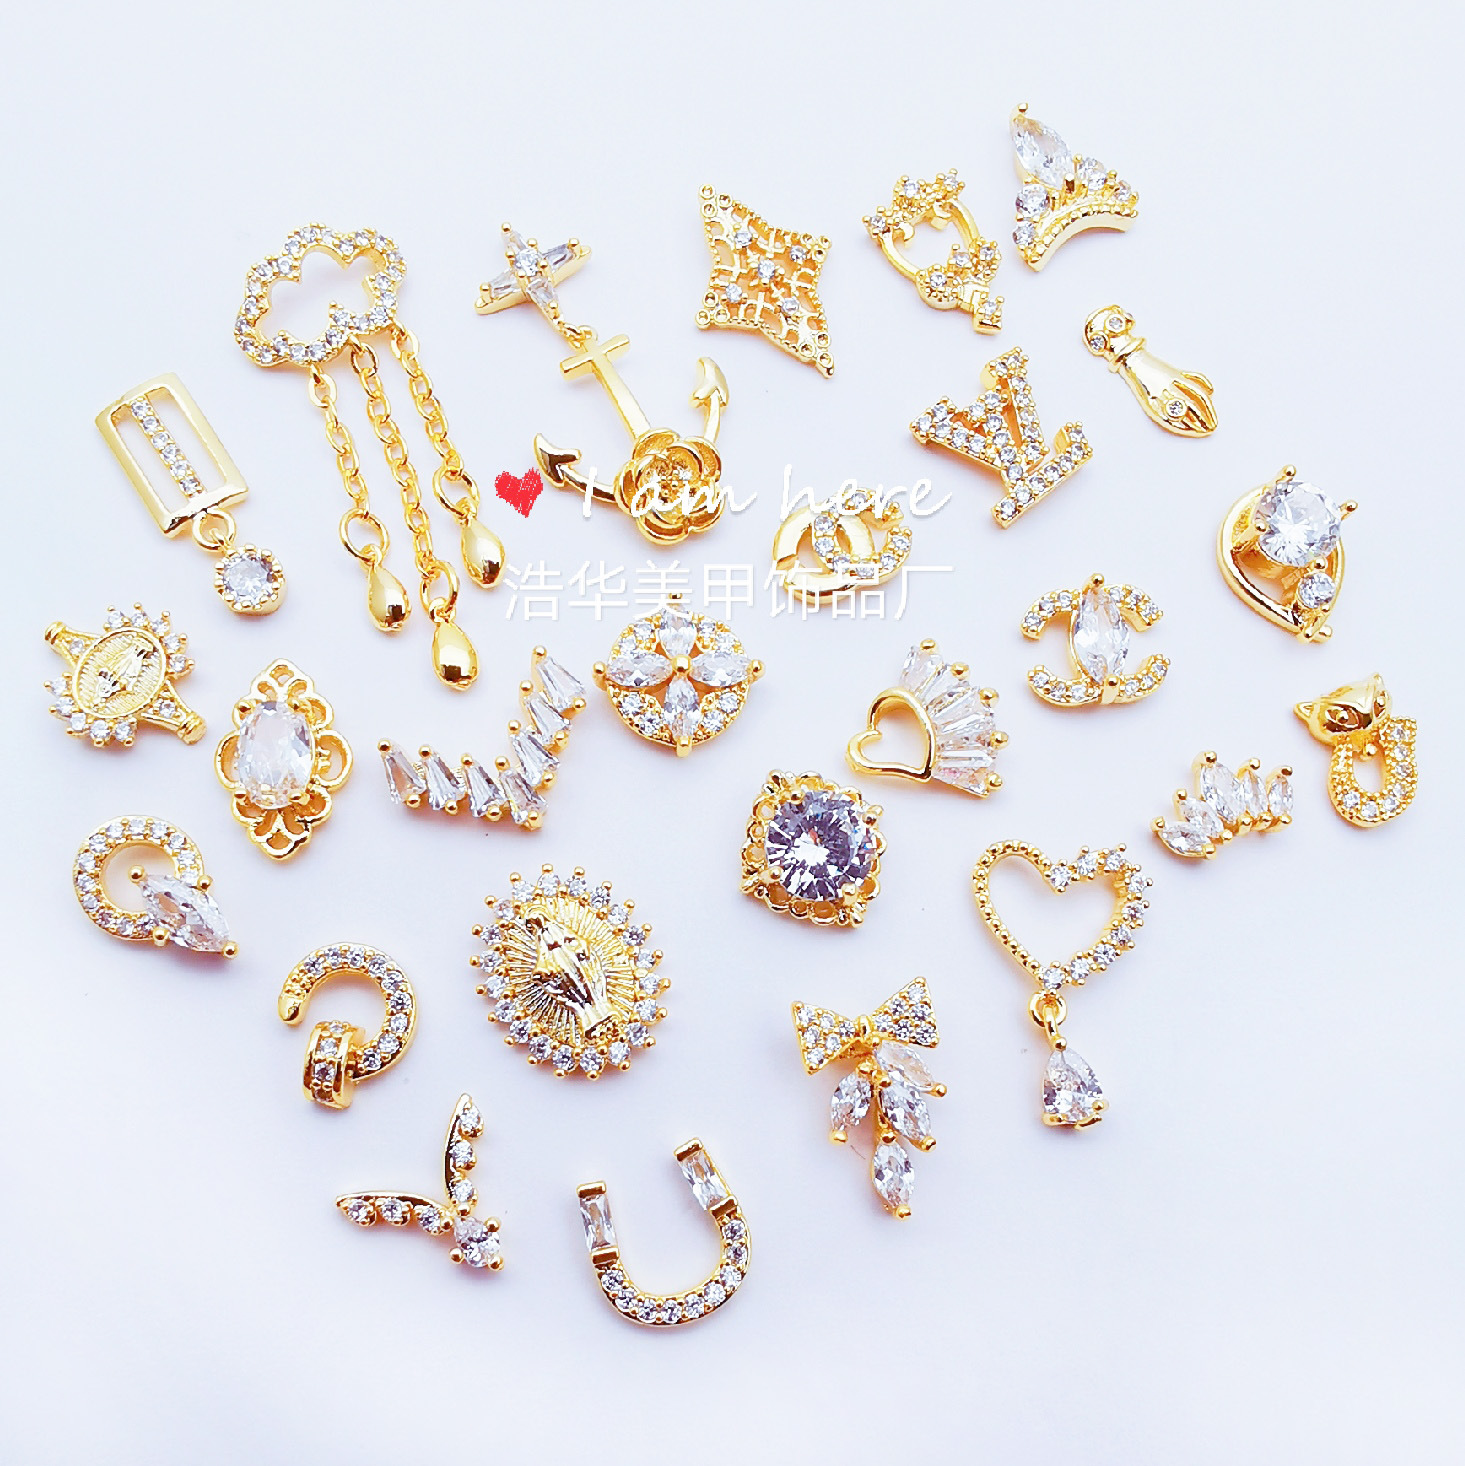 Nail Rhinestone New Products Taobao Hot Sales Nail Ornament Alloy Nail Sticker Big Brand Real Gold Maintains Color Electroplated